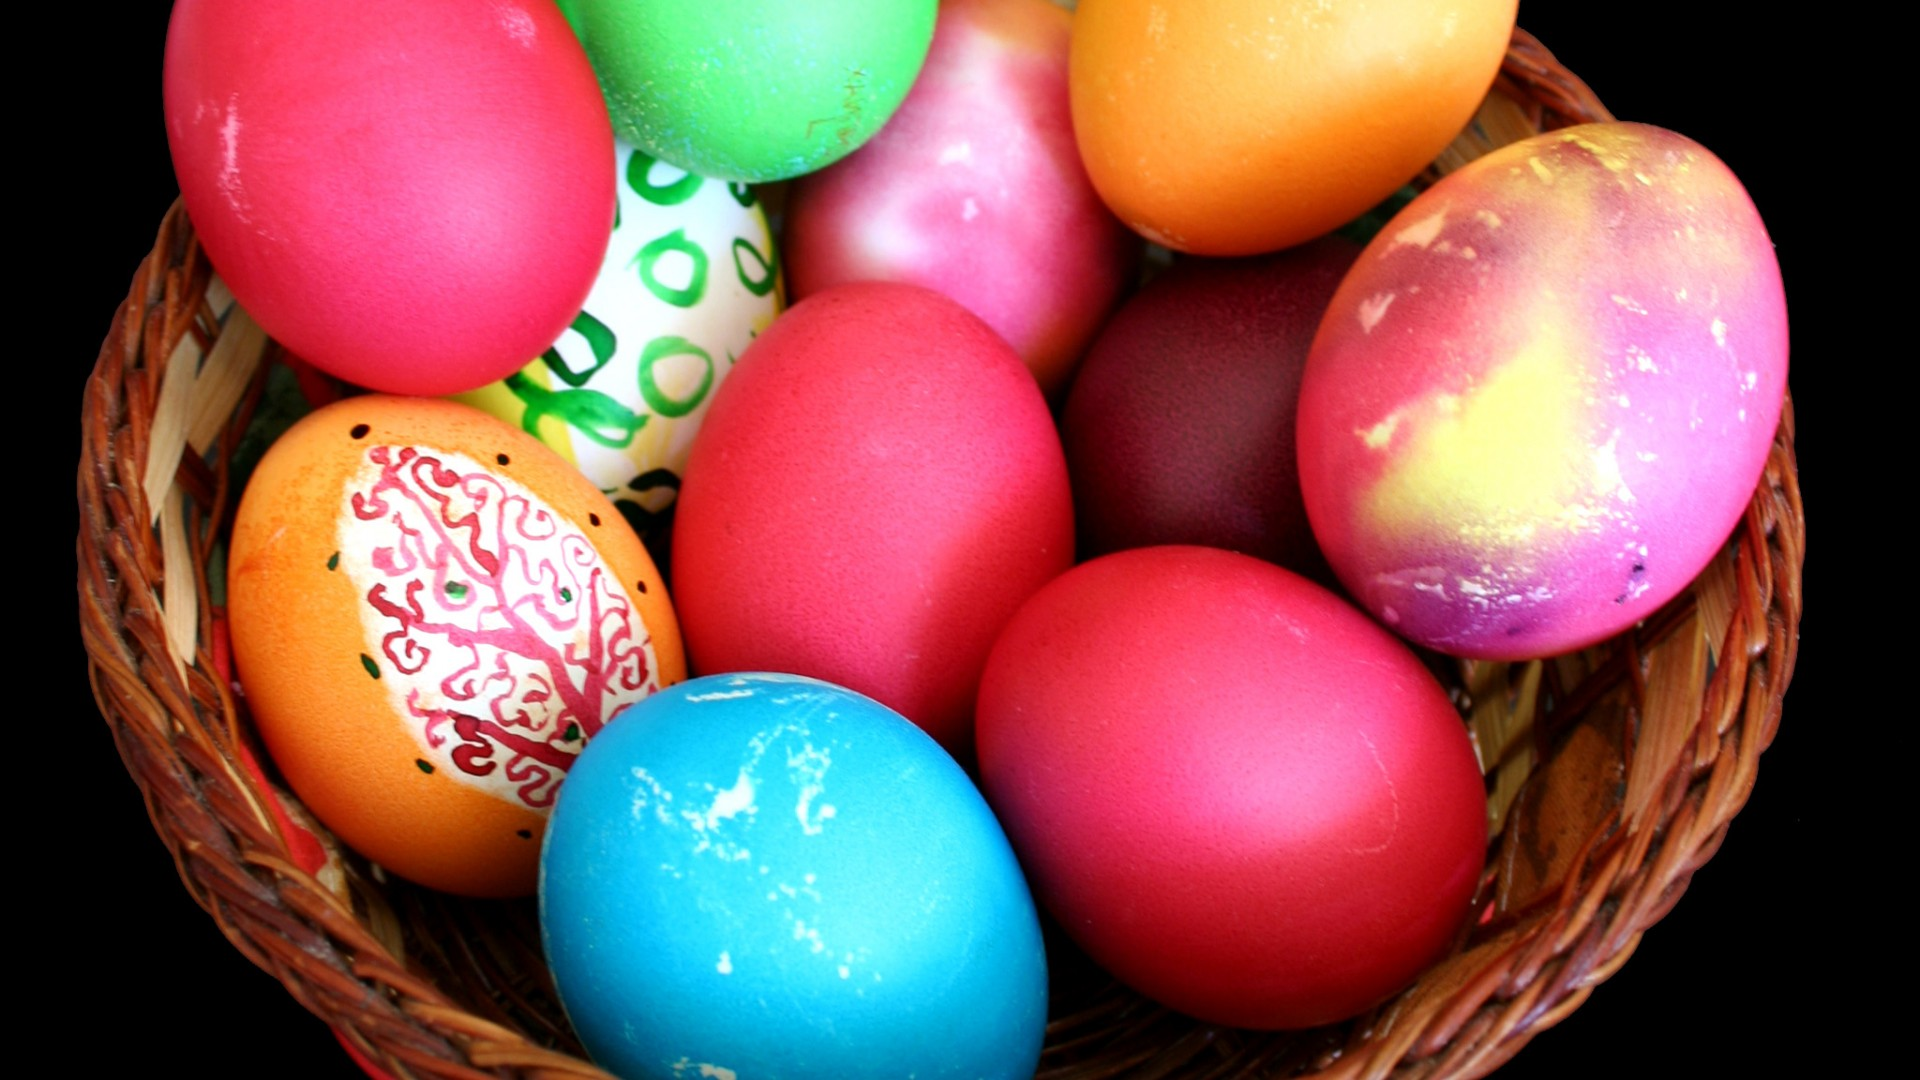 Easter Eggs in Basket Wallpaper   HD Wallpapers 1920x1080